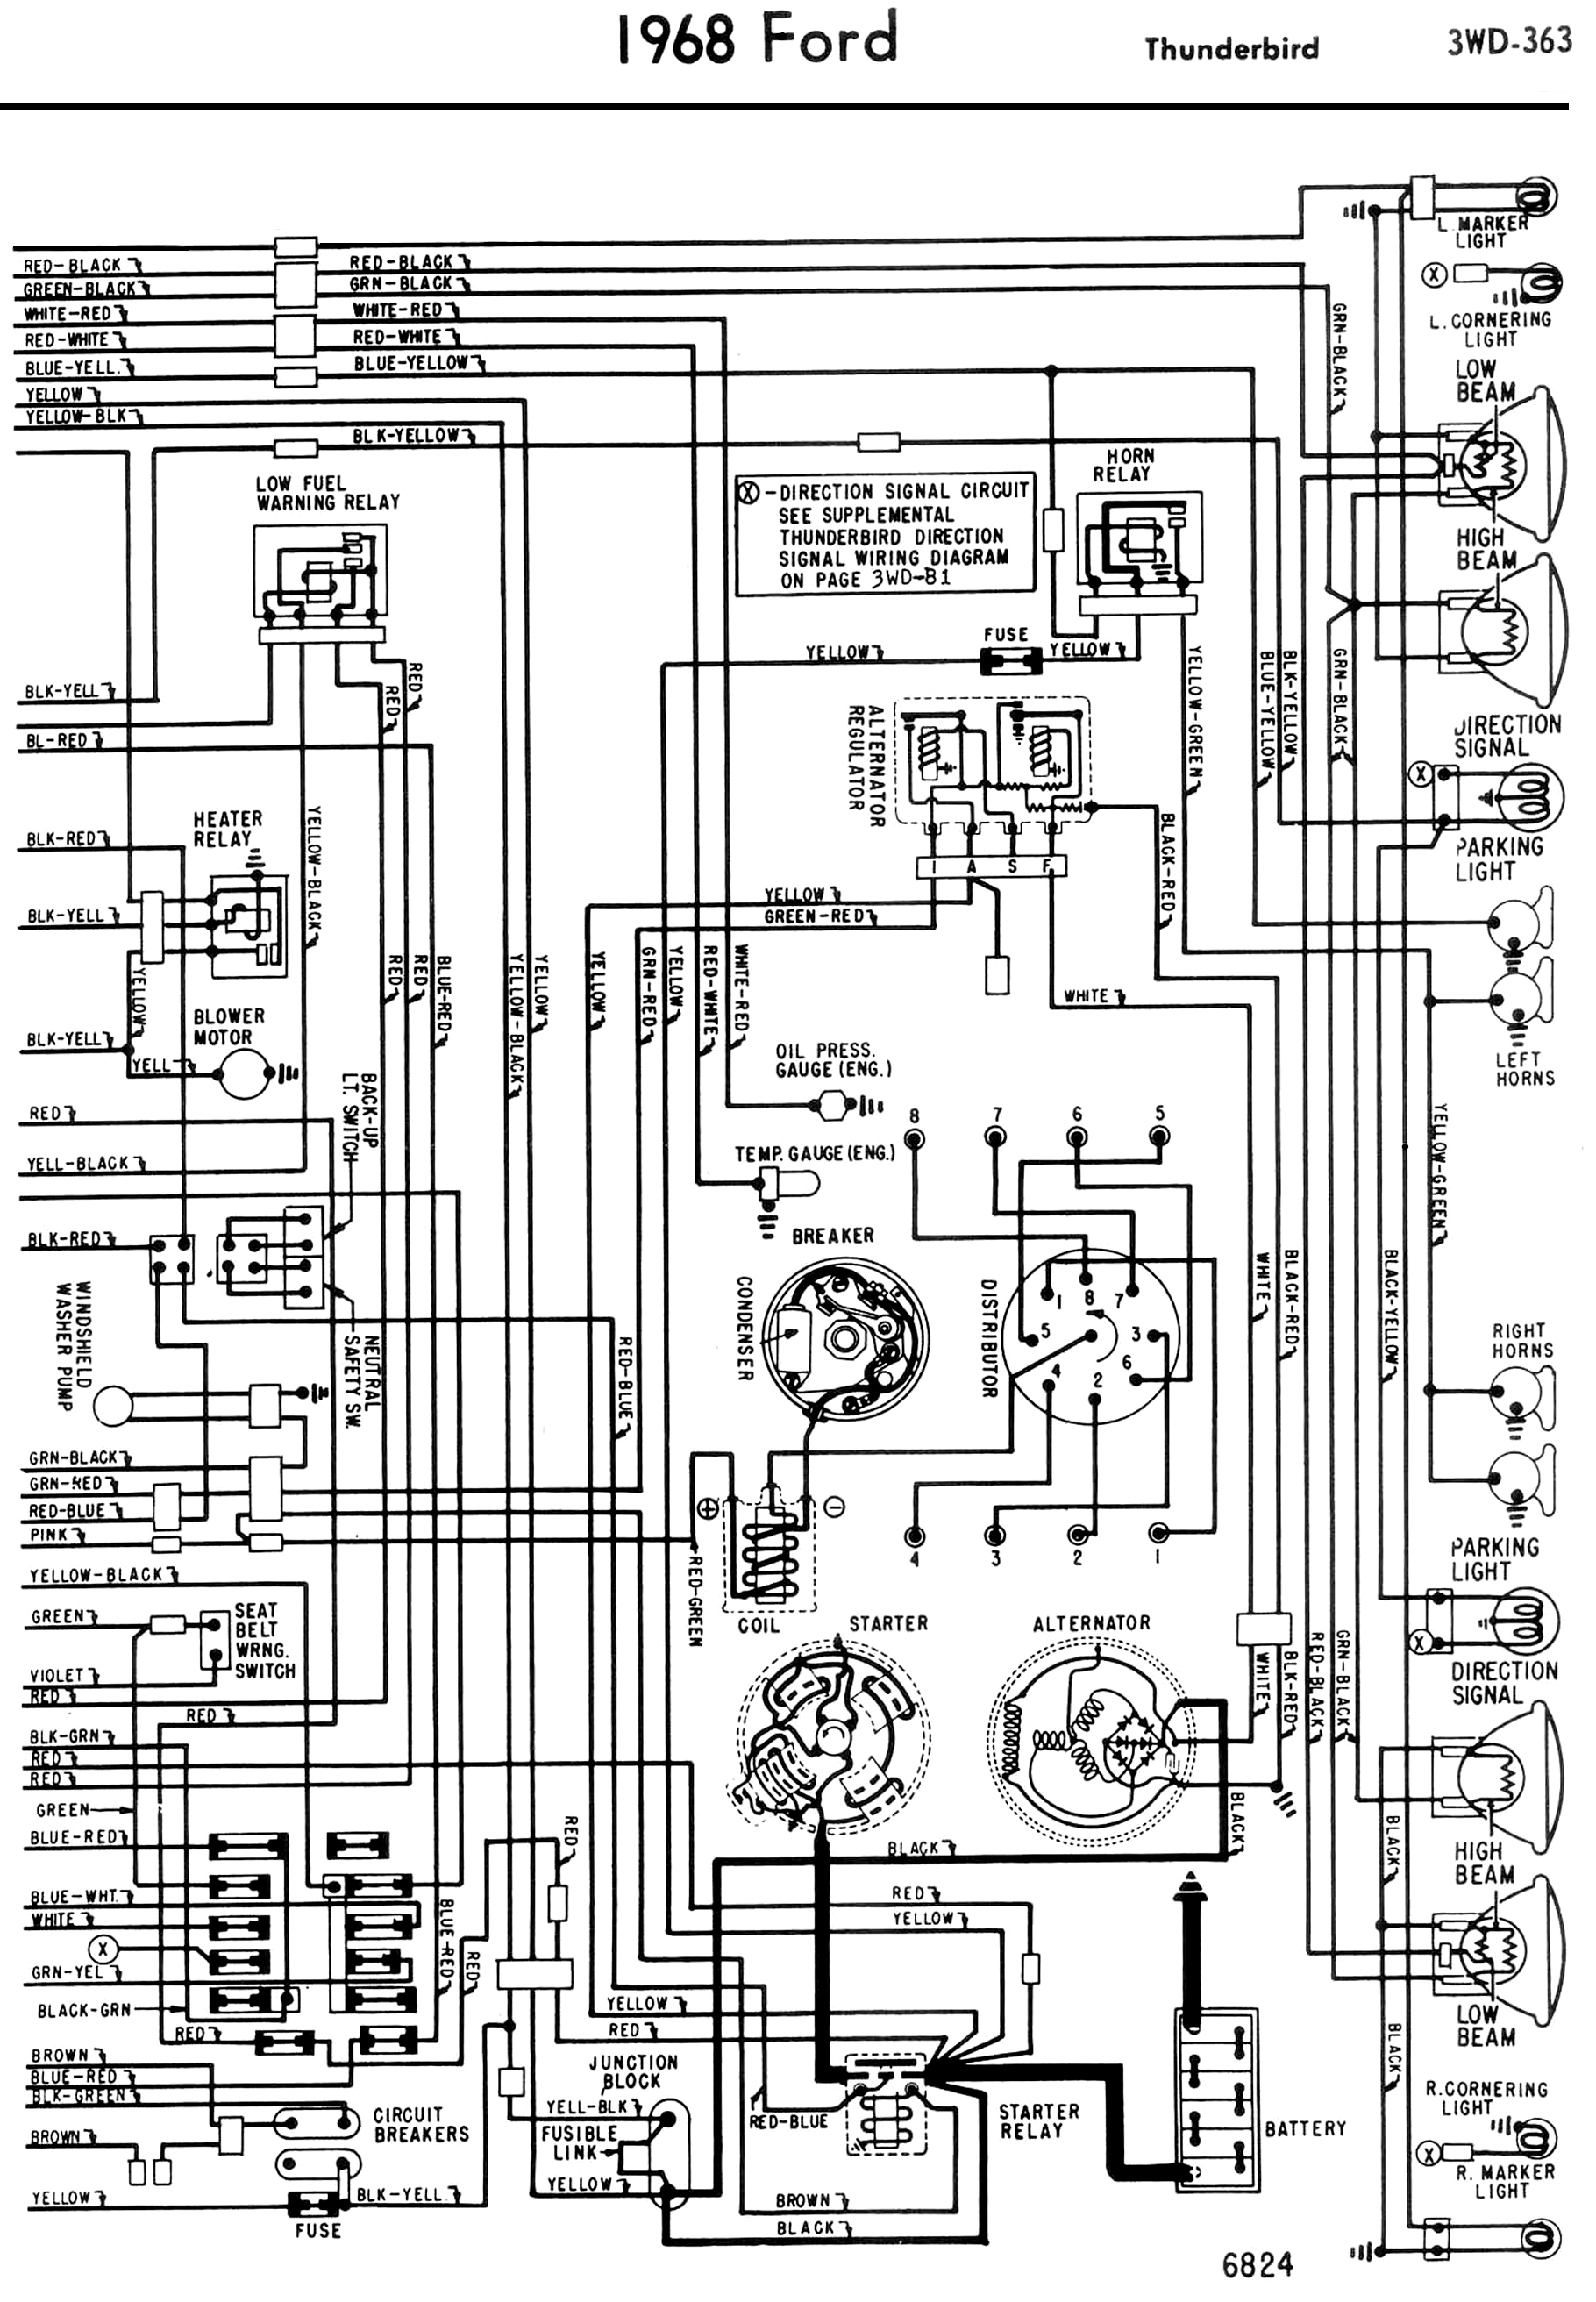 1968 f250 wiring diagram wiring diagram  1968 f250 wiring diagrams #5